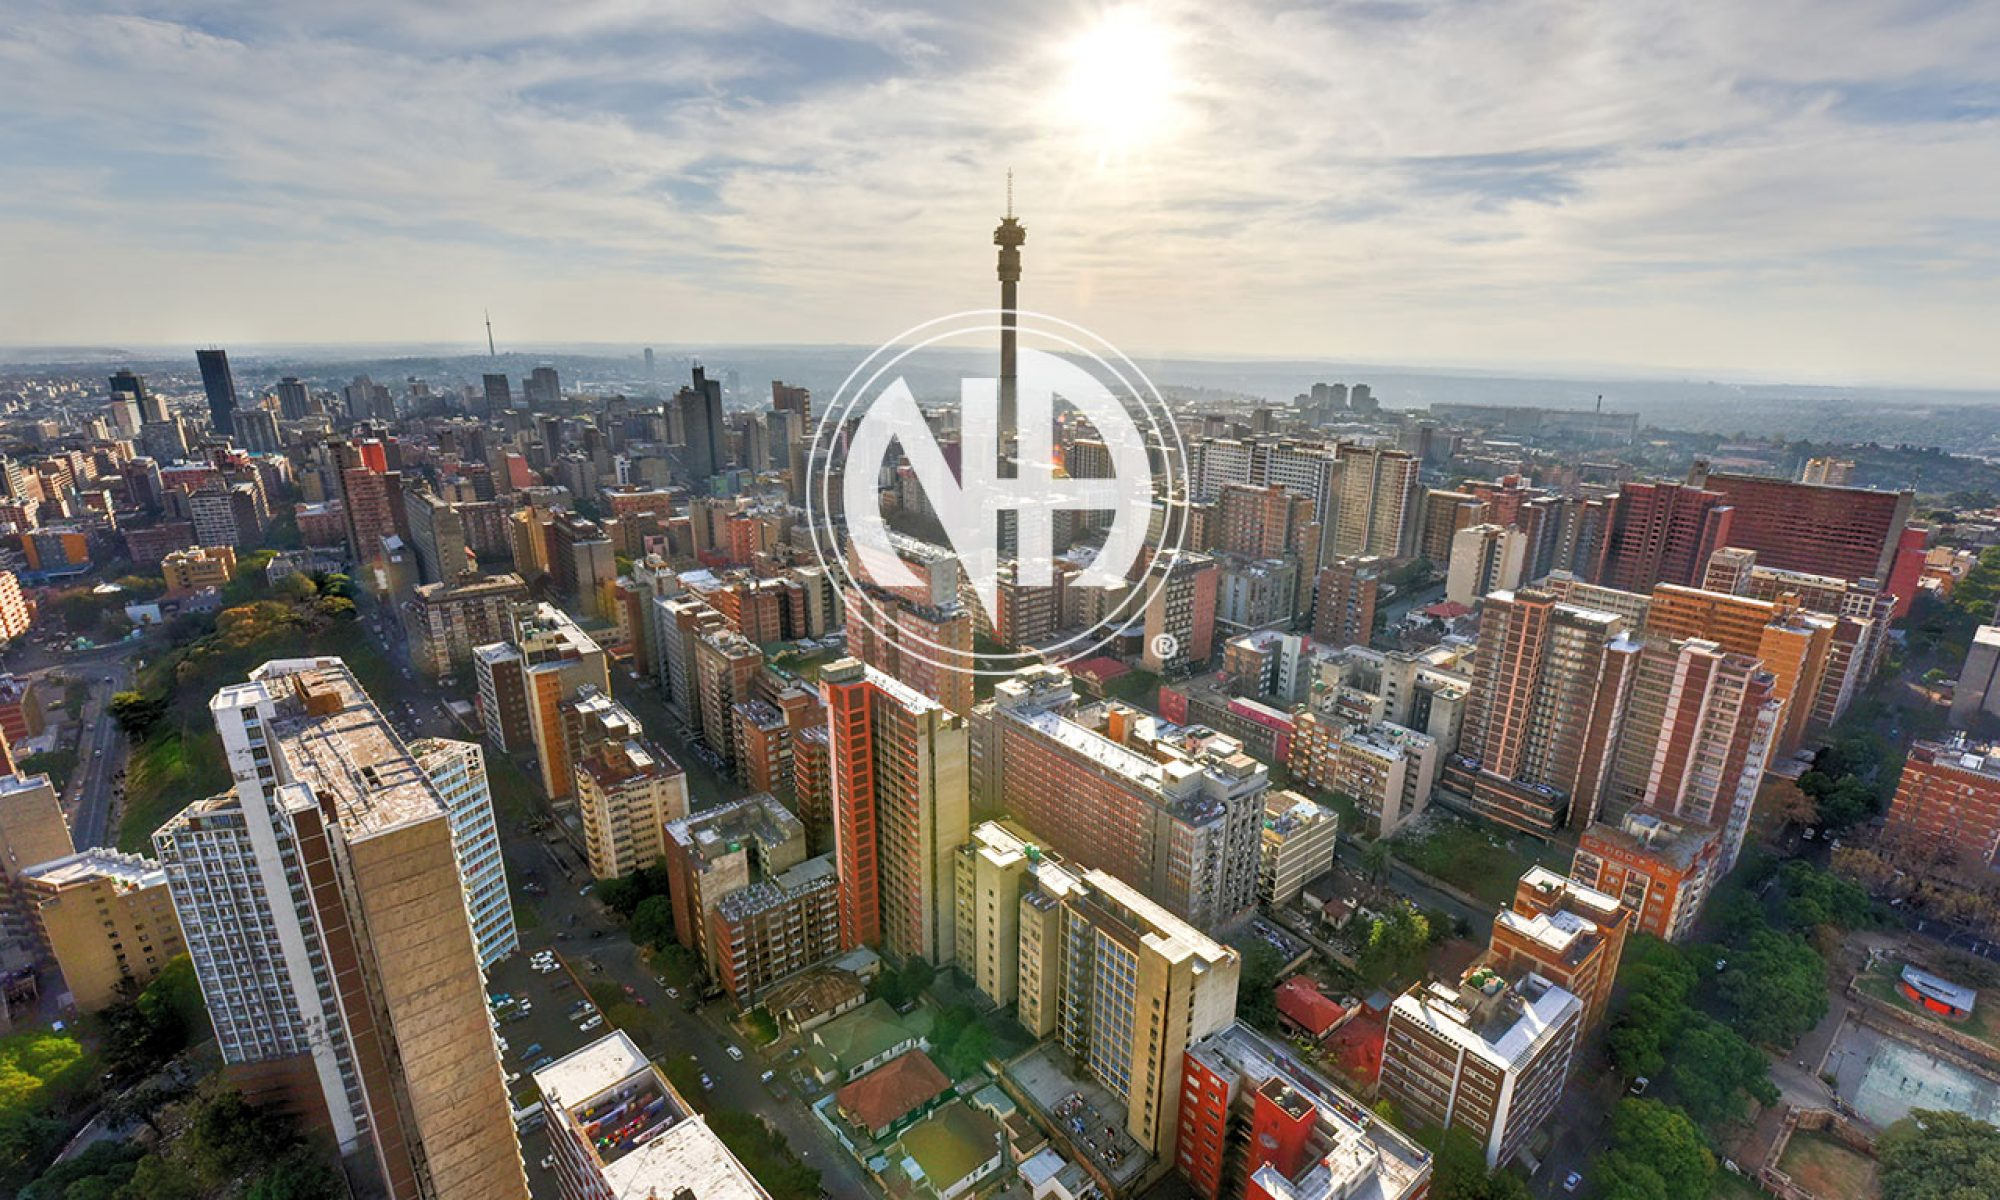 Narcotics Anonymous Johannesburg